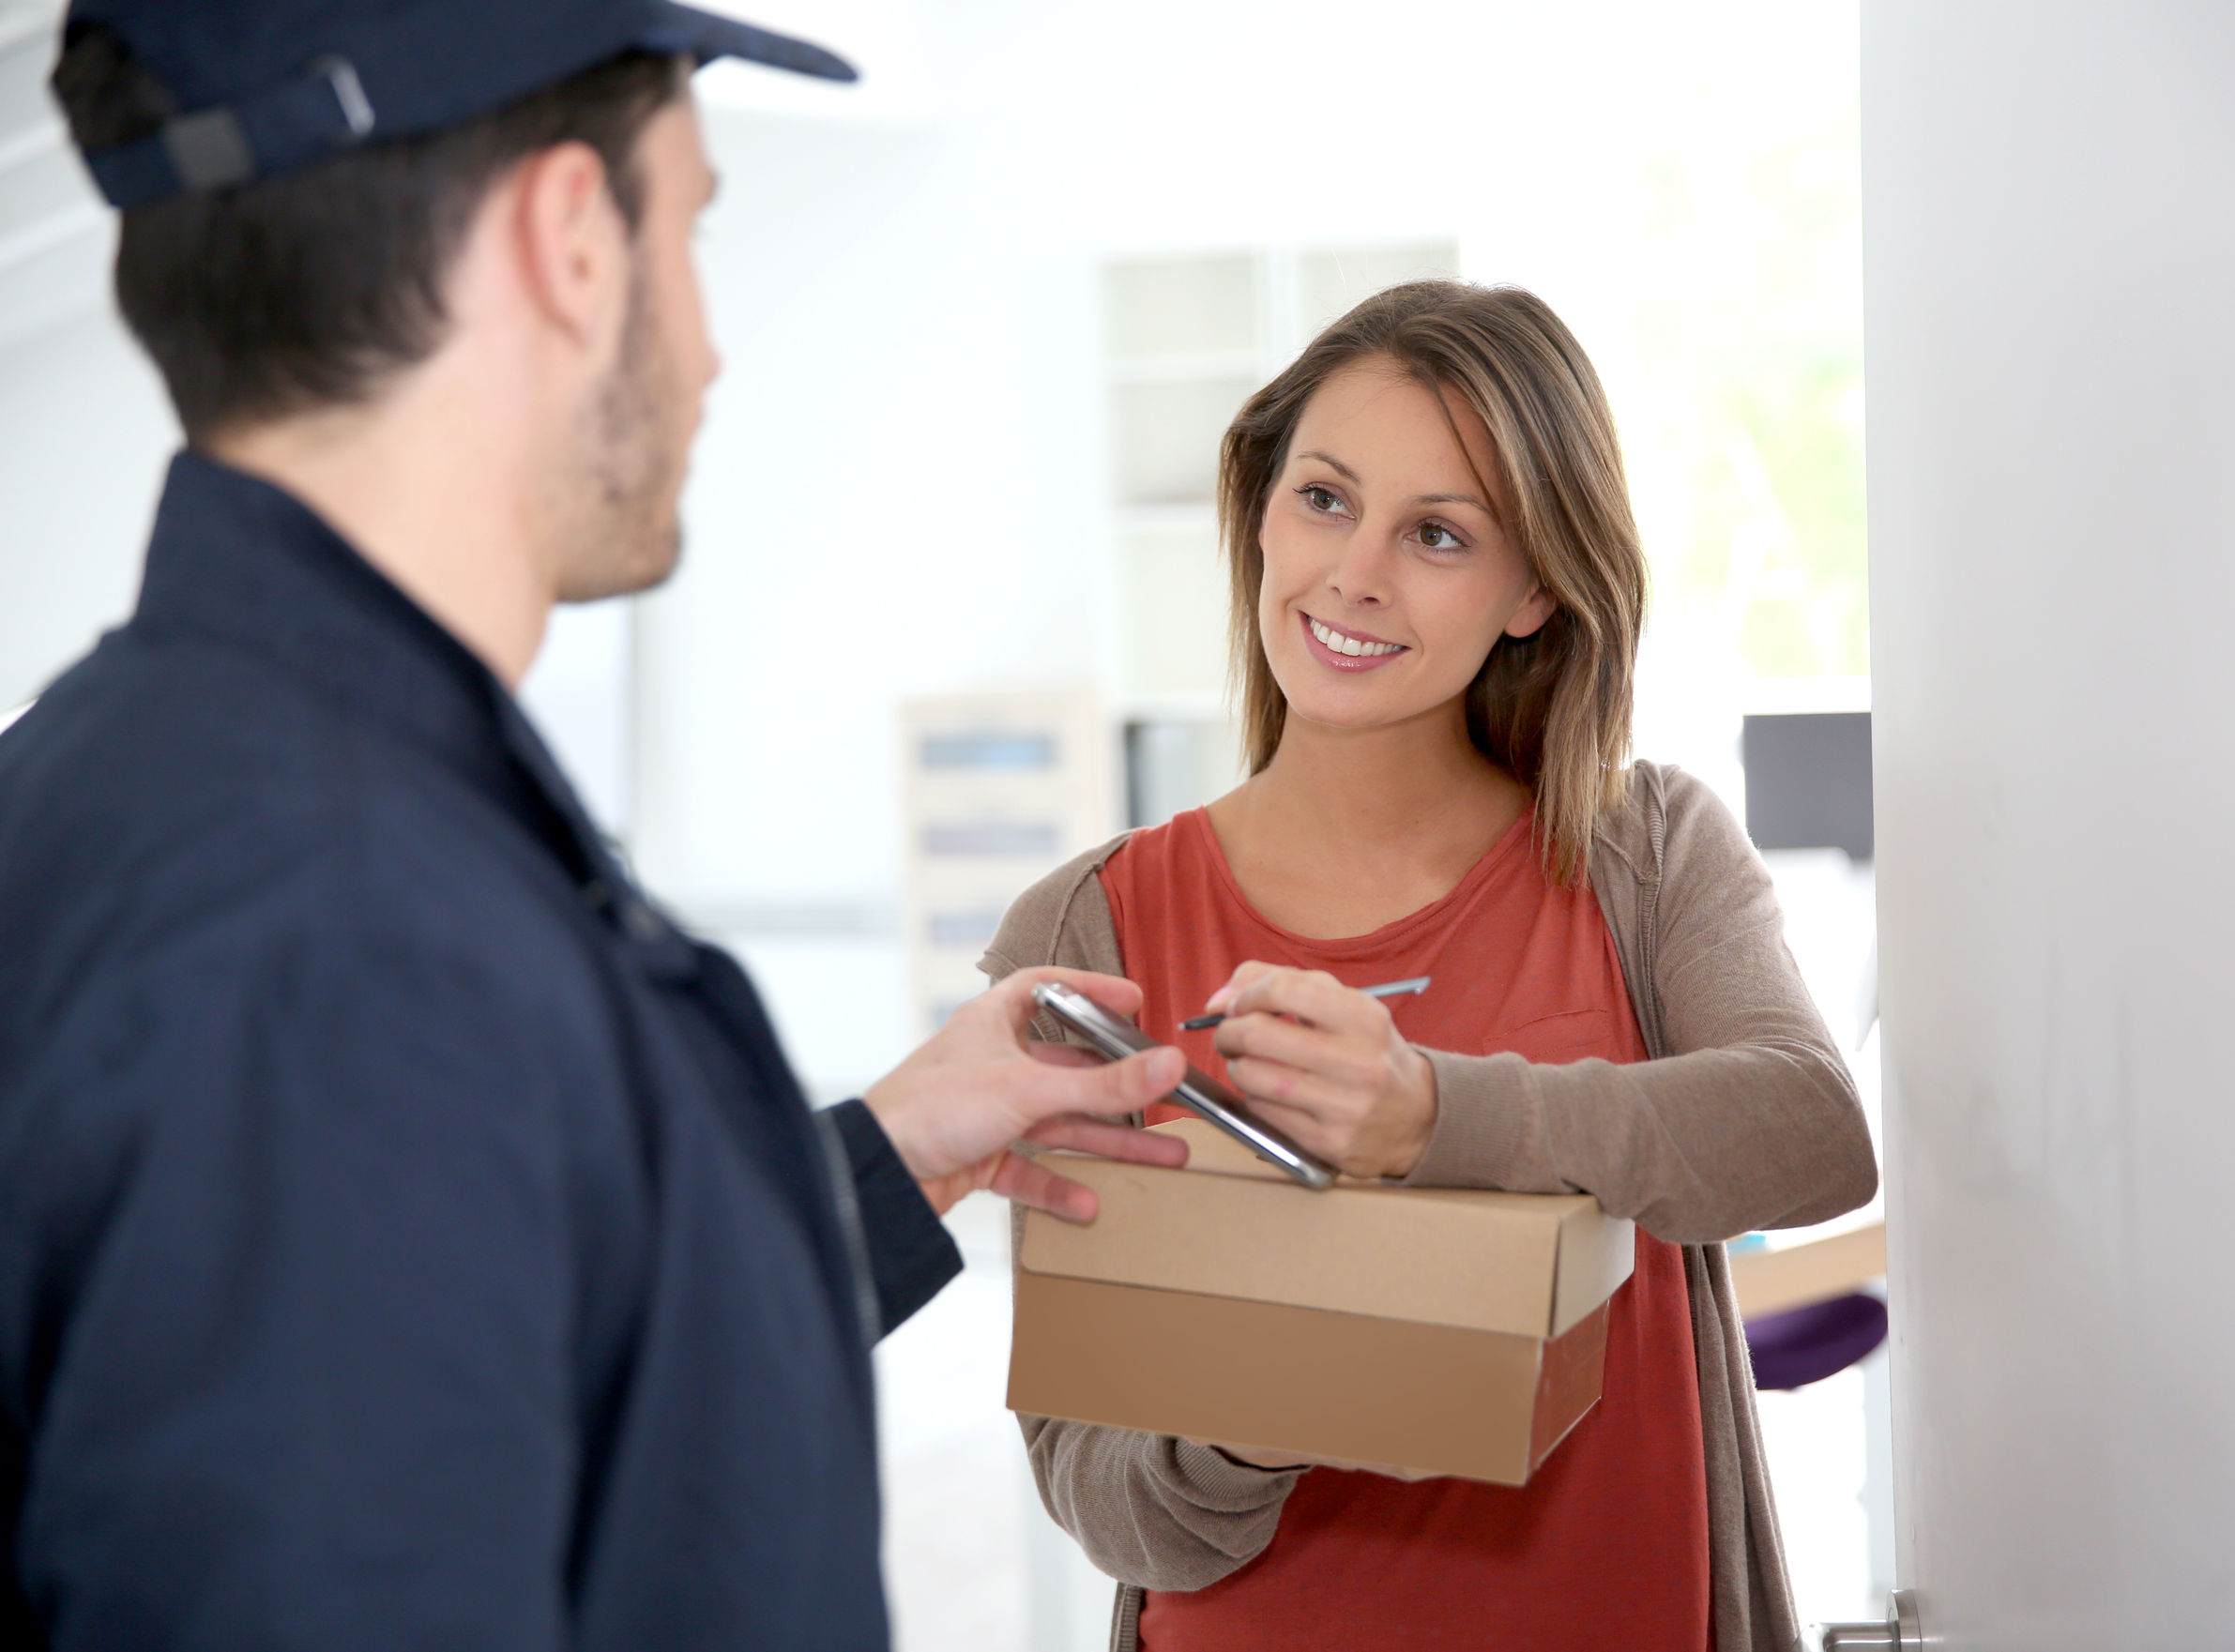 Woman signing to accept and receive her parcel from the carrier